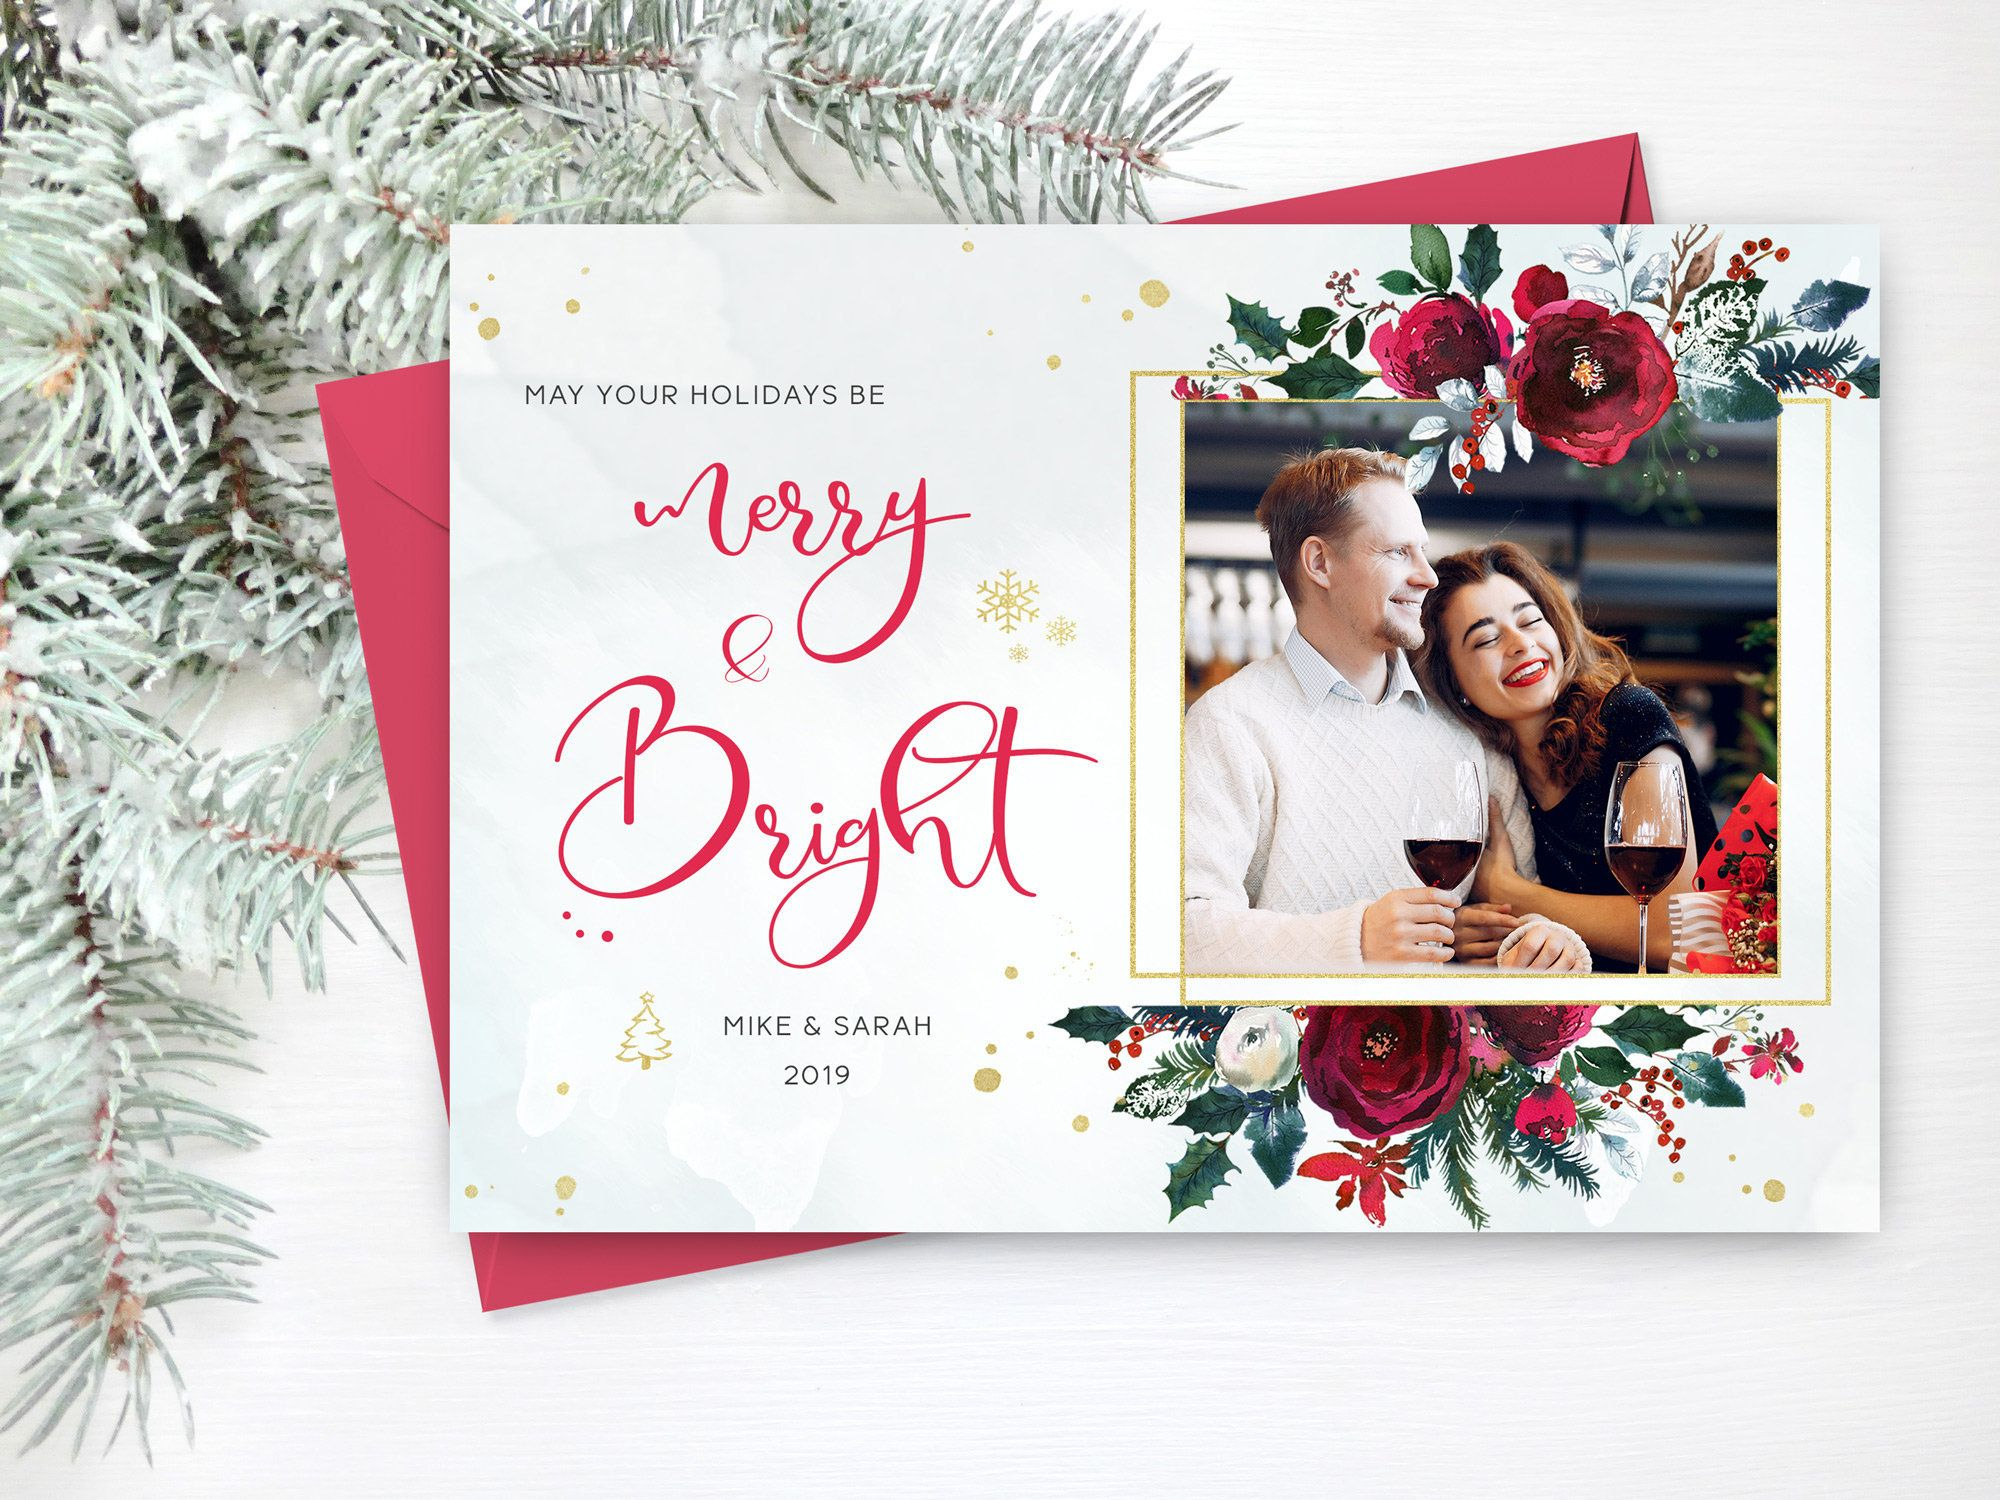 Printable Cards Printable Photo Card Holiday Photo Card Cards with Photos Family Greetings Photo Cards Family Cards Digital Cards